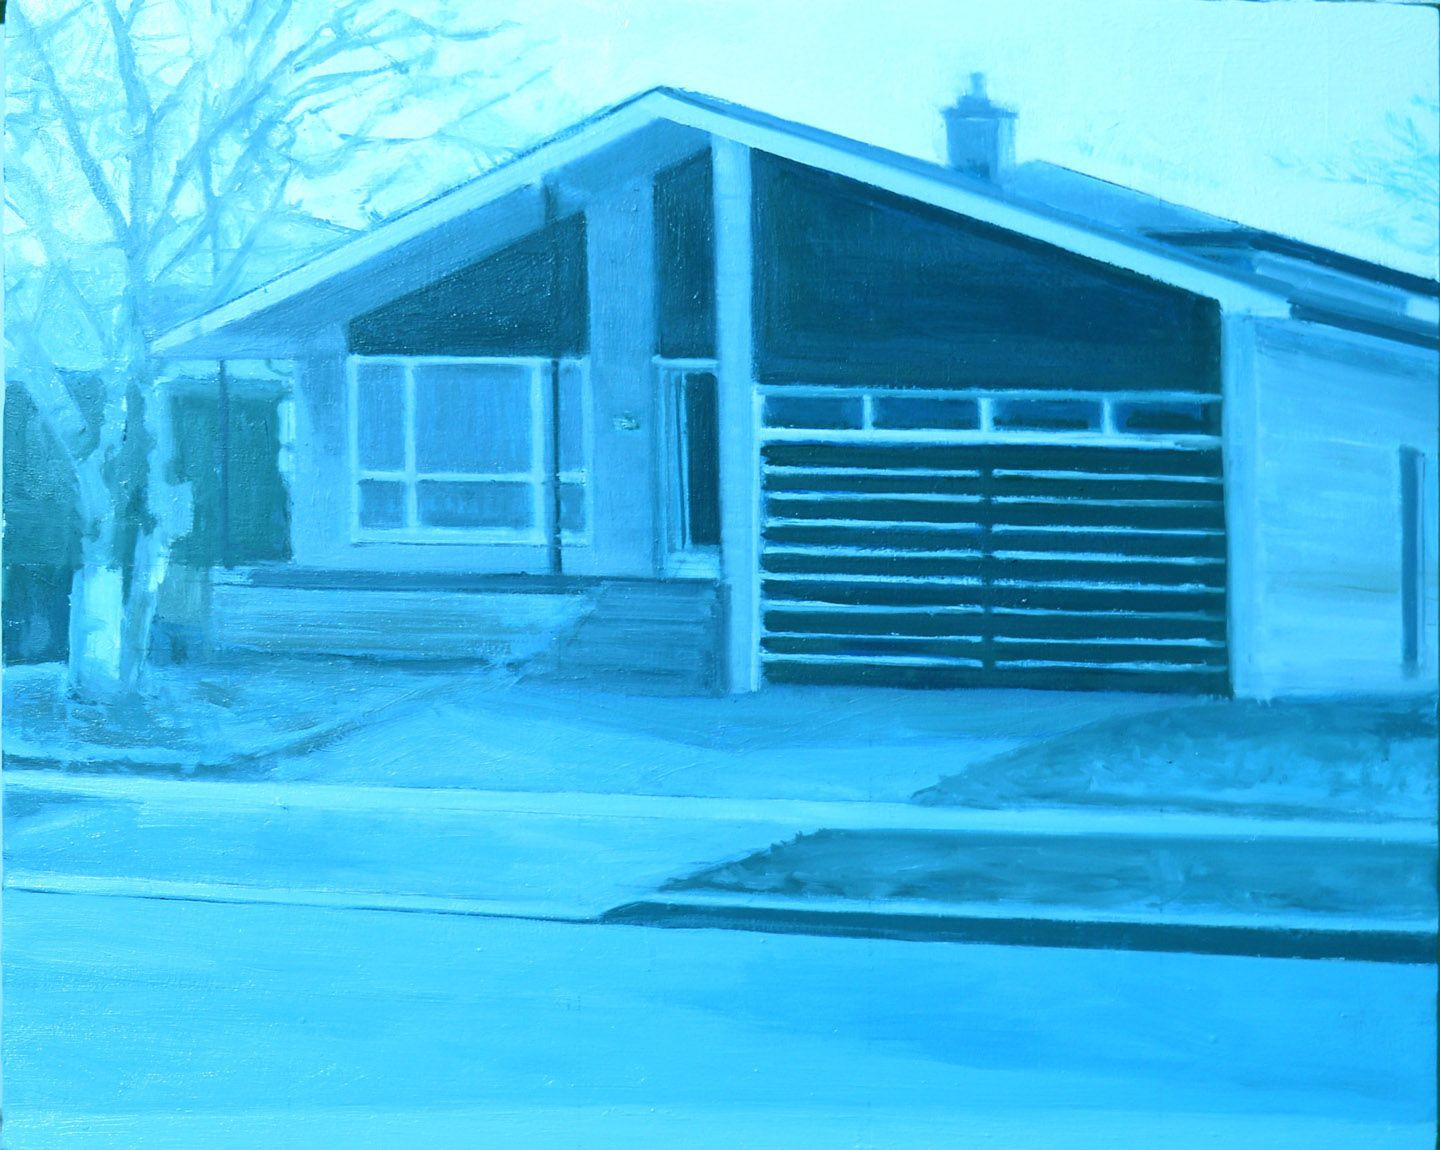 Suburban House 2, 2017, oil on wood, 8 x 10 in.